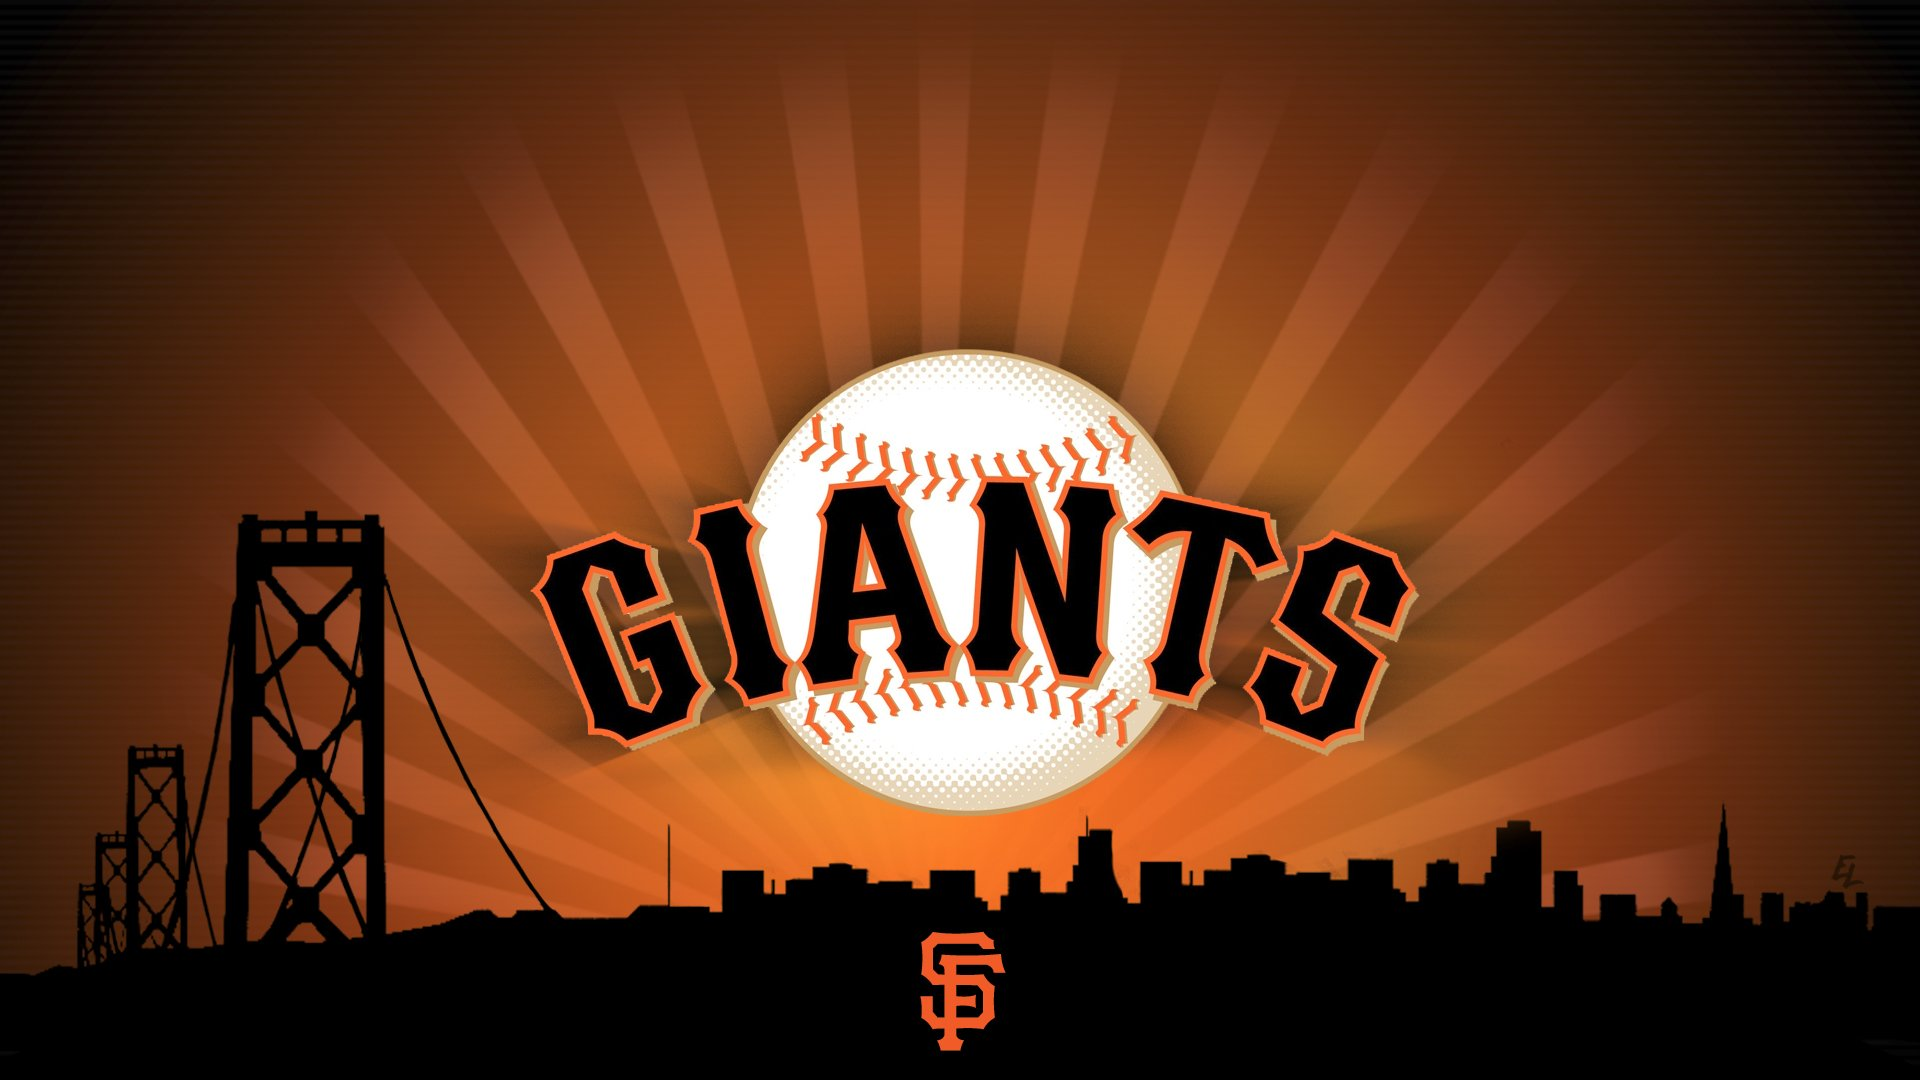 San Francisco Giants by enfamous3 1920 x 1080 1920x1080